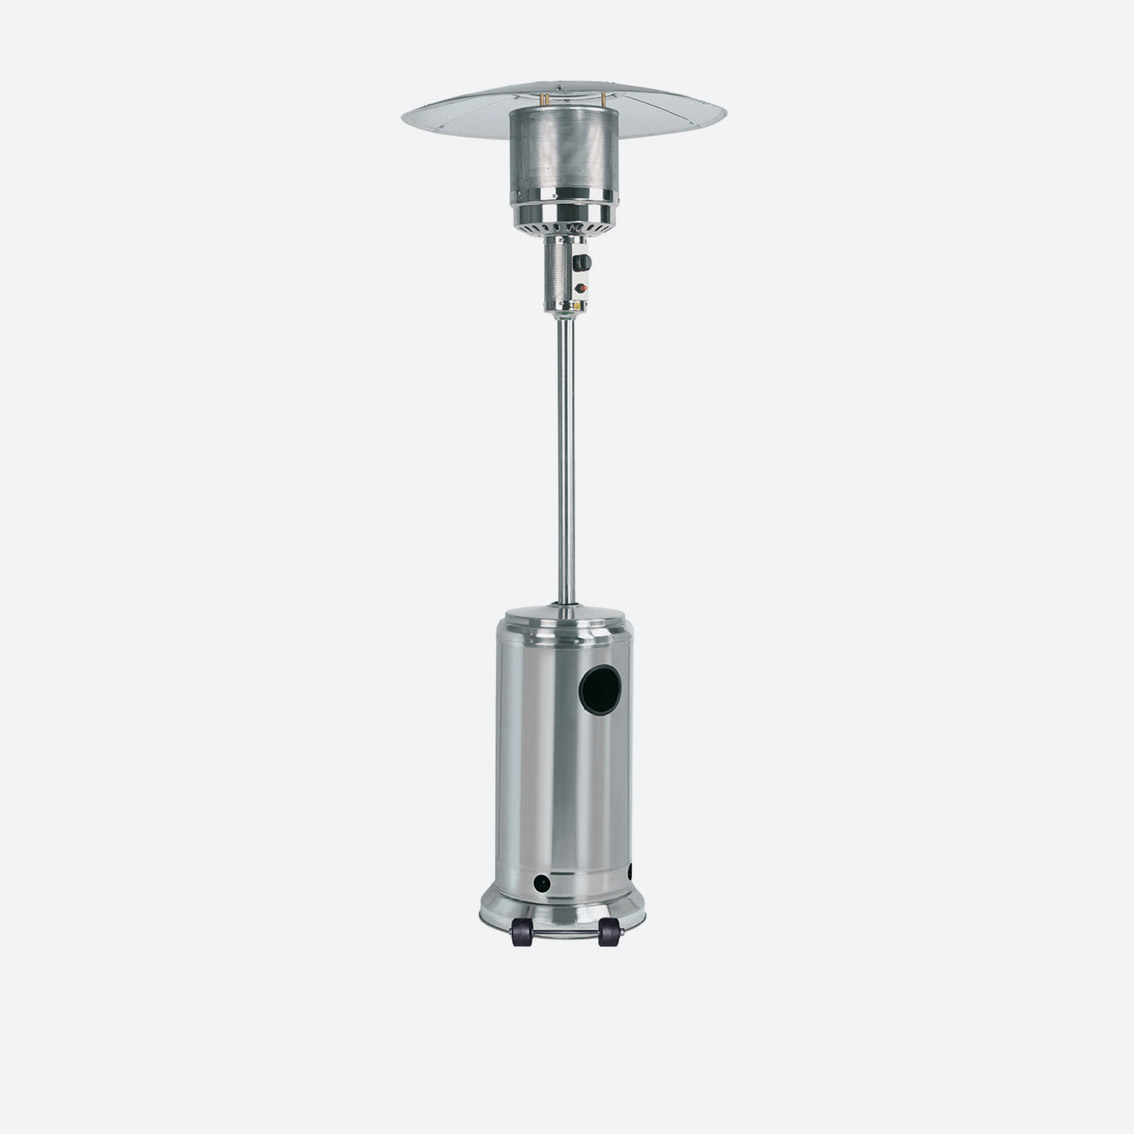 PATIO HEATER   $75.00